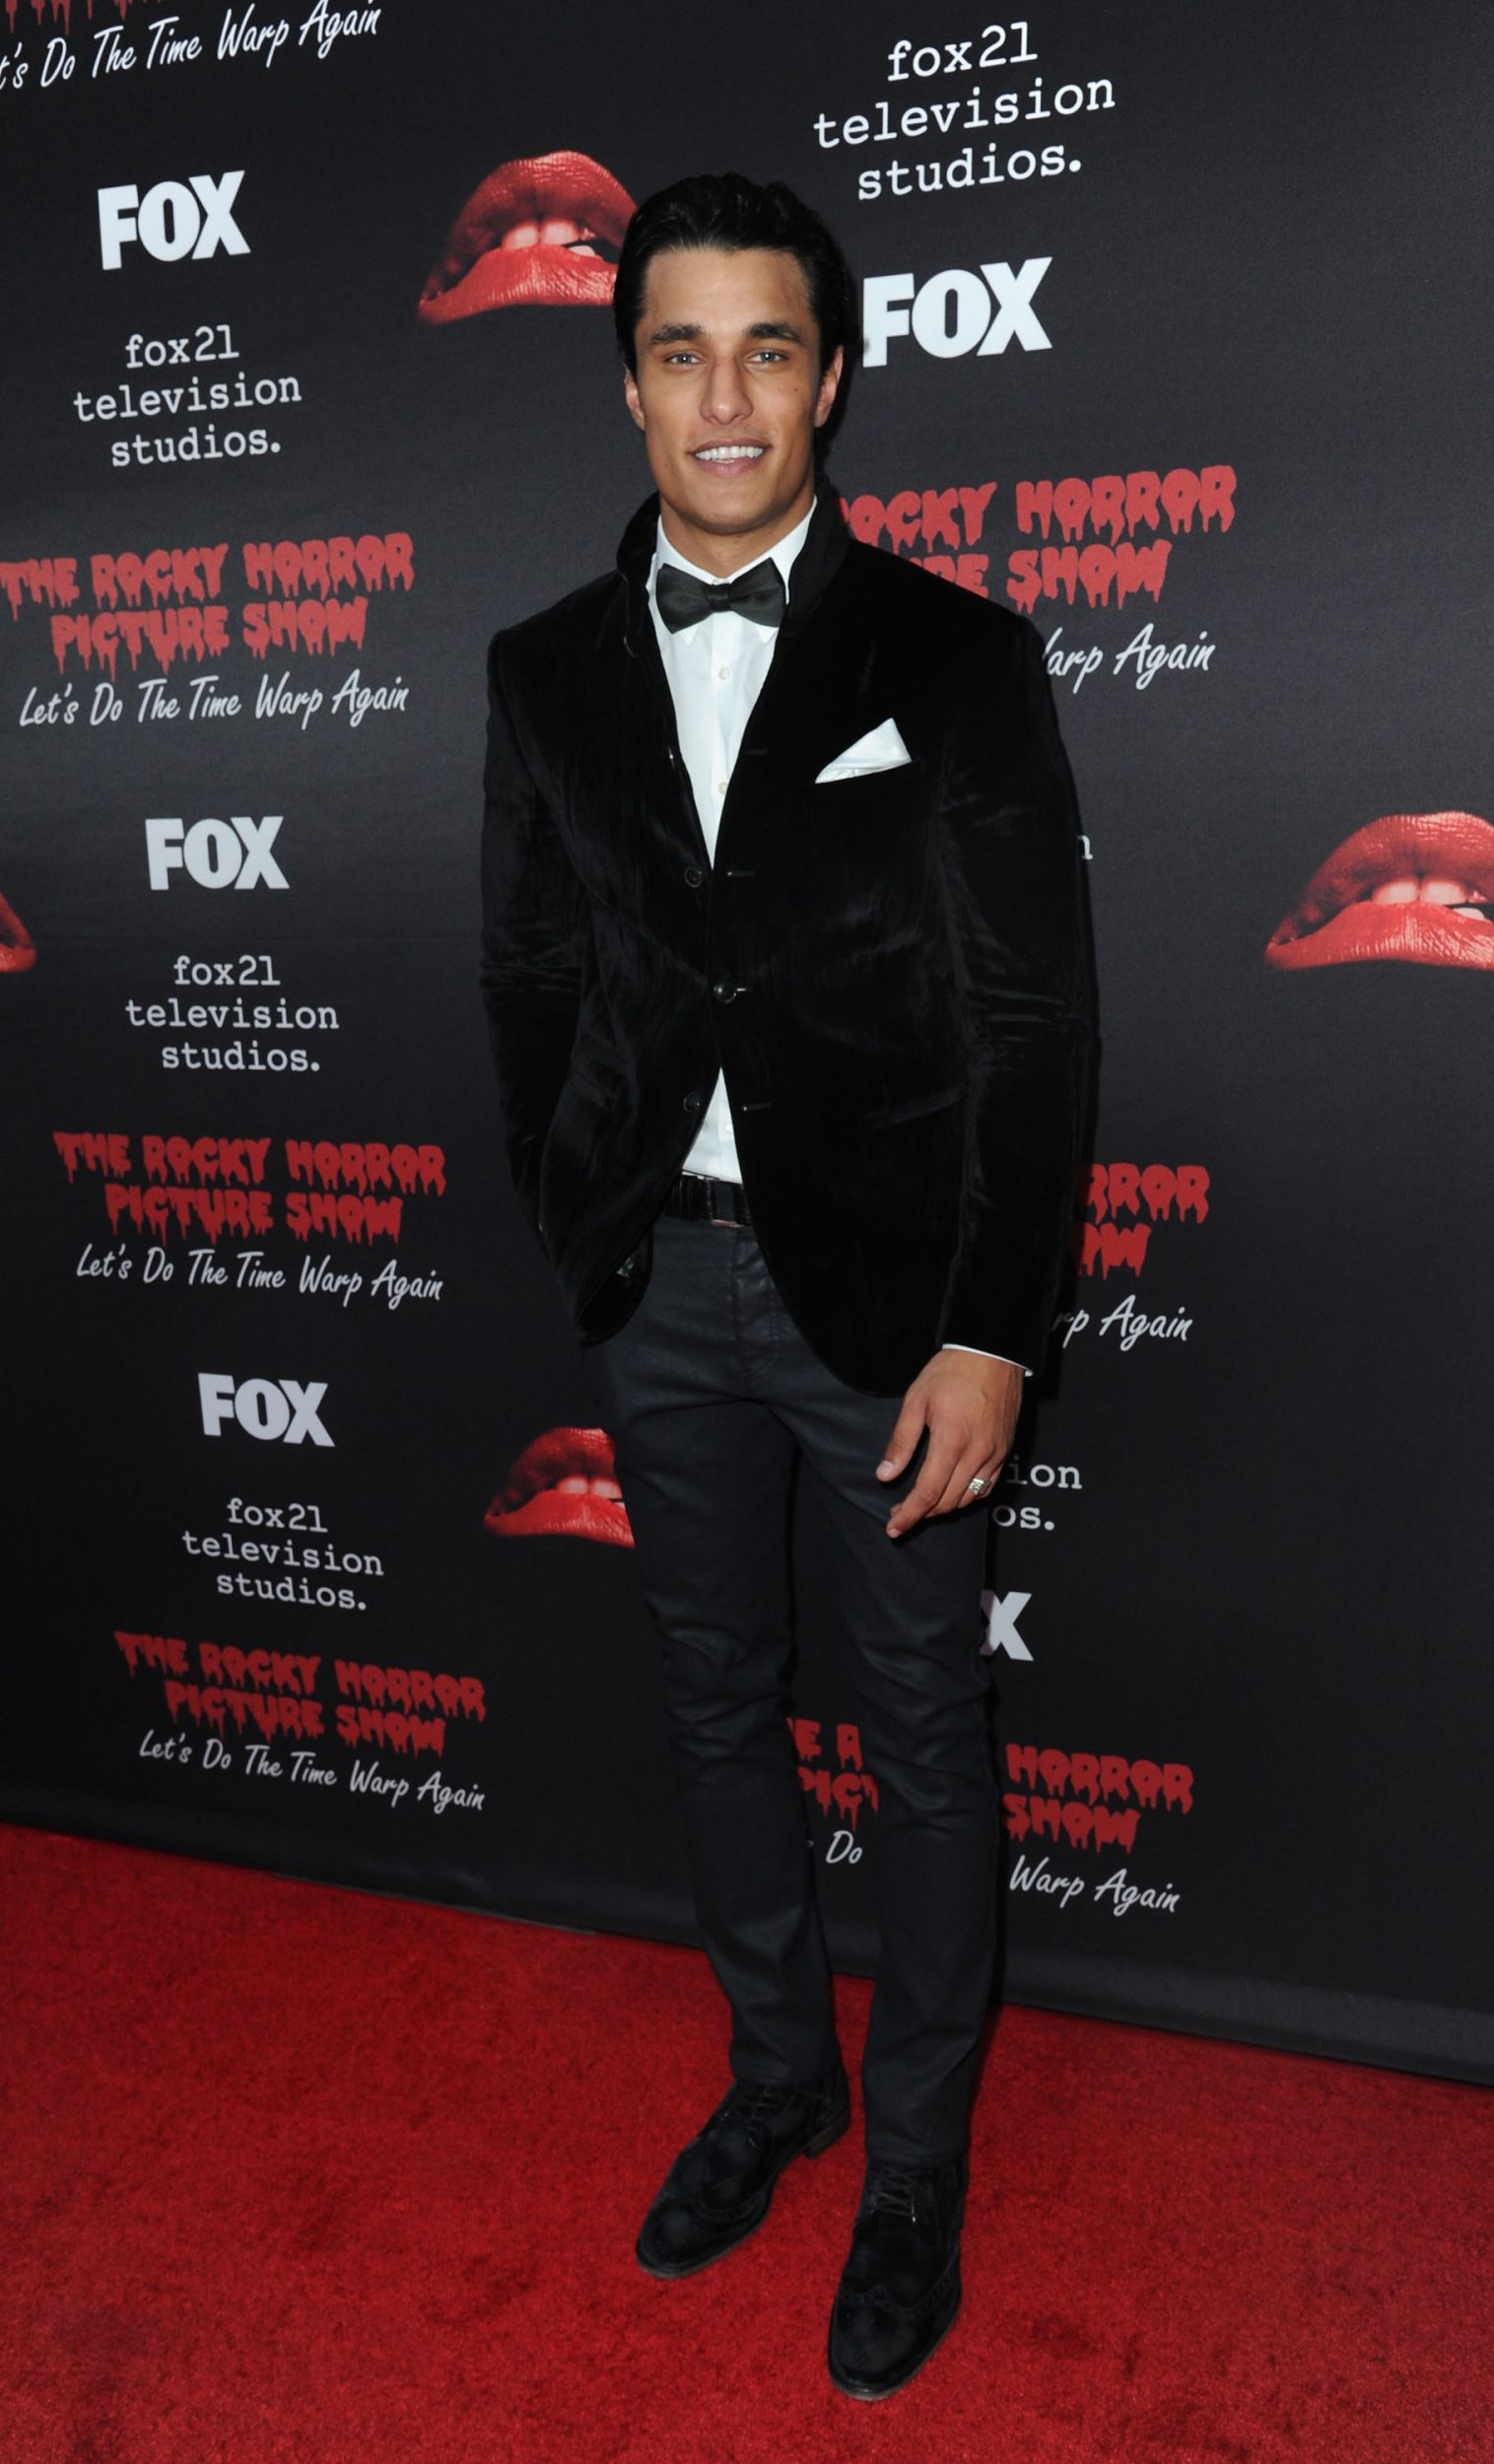 THE ROCKY HORROR PICTURE SHOW: Let's Do The Time Warp Again (and Transylvanians!): Cast member Staz Nair arrives at THE ROCKY HORROR PICTURE SHOW: Let's Do The Time Warp Again (and Transylvanians!) premiere party red carpet at The Roxy on Thursday, Oct. 13, in Los Angeles, CA. THE ROCKY HORROR PICTURE SHOW: Let's Do The Time Warp Again (And Transylvanians!) premieres Thursday, Oct. 20 (8:00-10:00 PM ET/PT) on FOX. © 2016 FOX BROADCASTING CR: Richard Shotwell/FOX